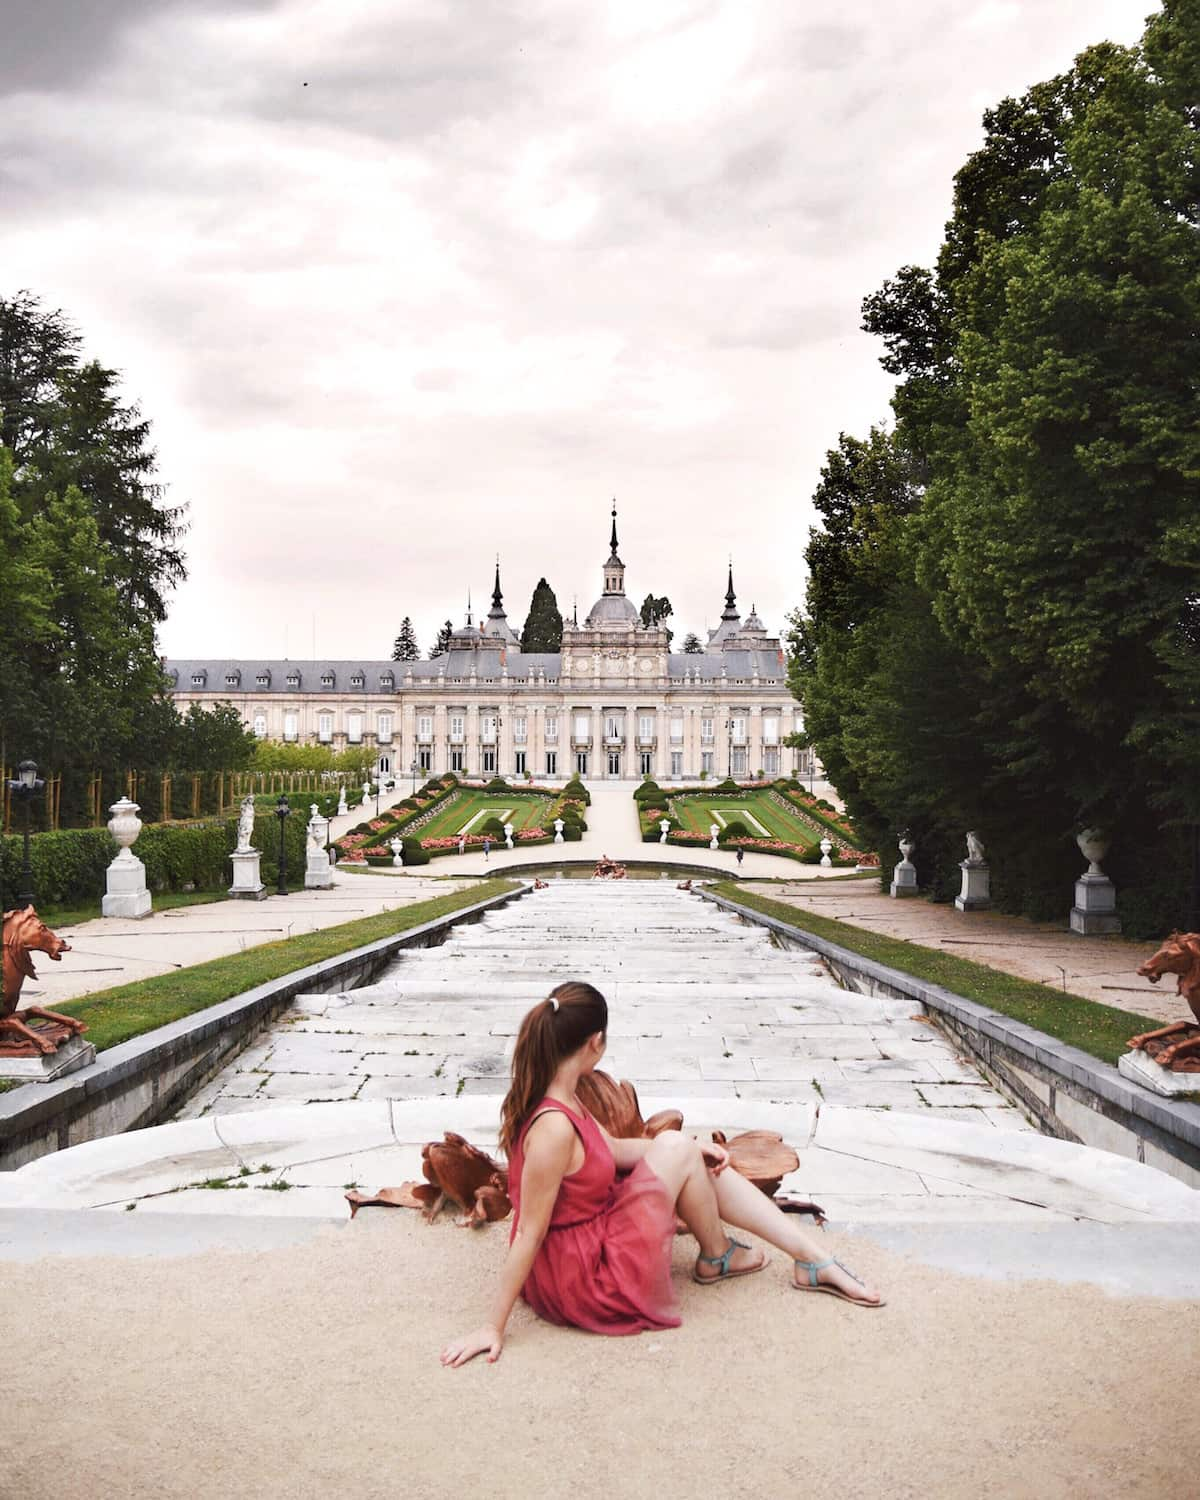 La Granja de San Ildefonso with girl in pink dress